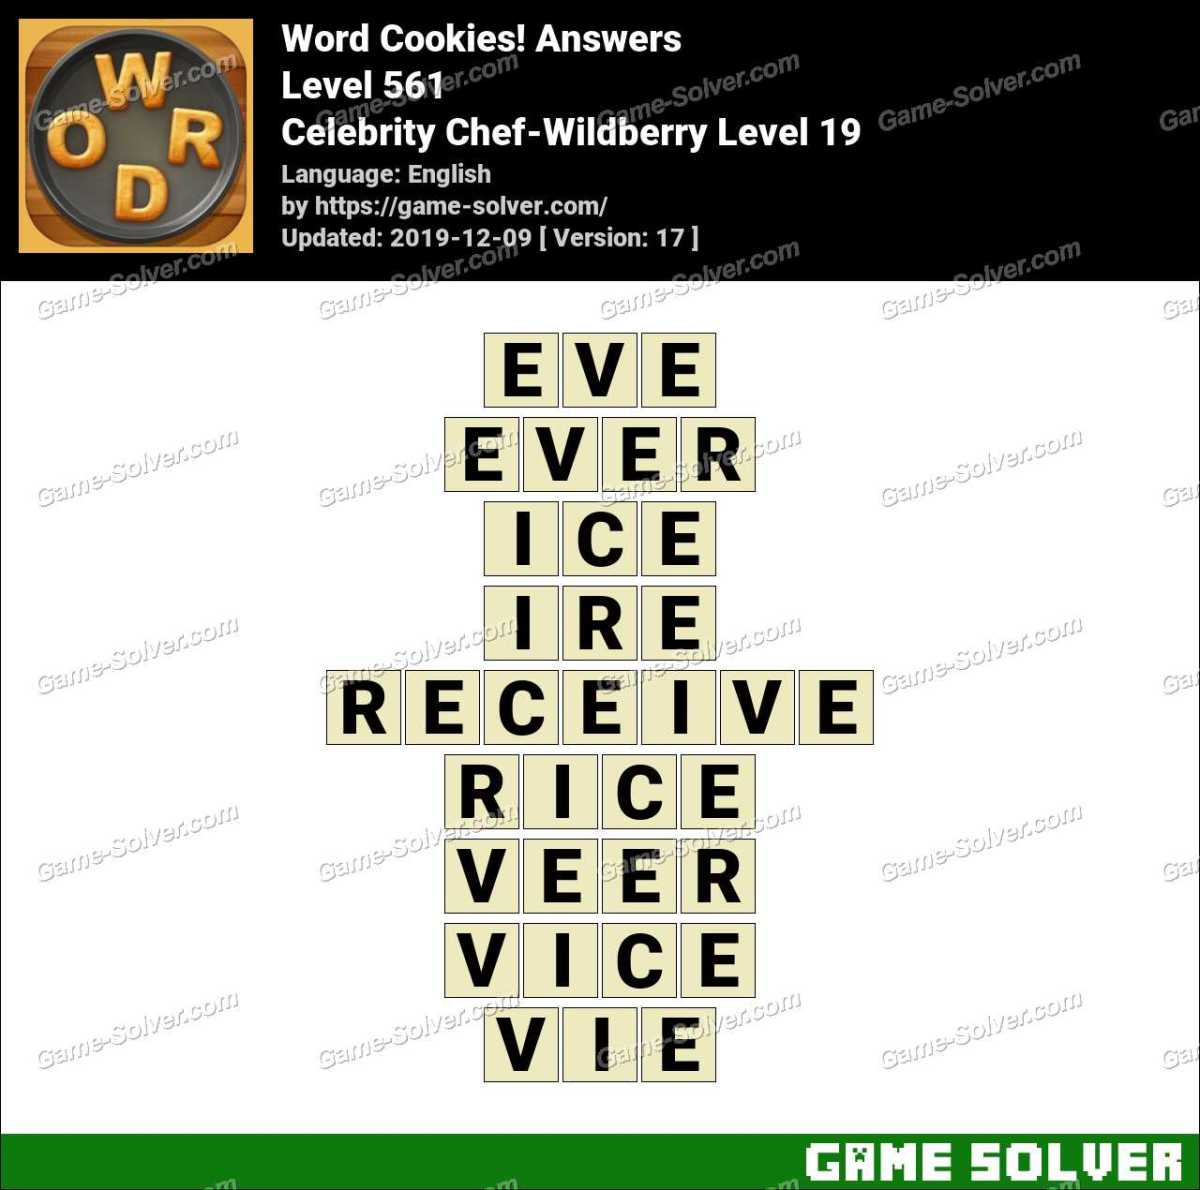 Word Cookies Celebrity Chef-Wildberry Level 19 Answers